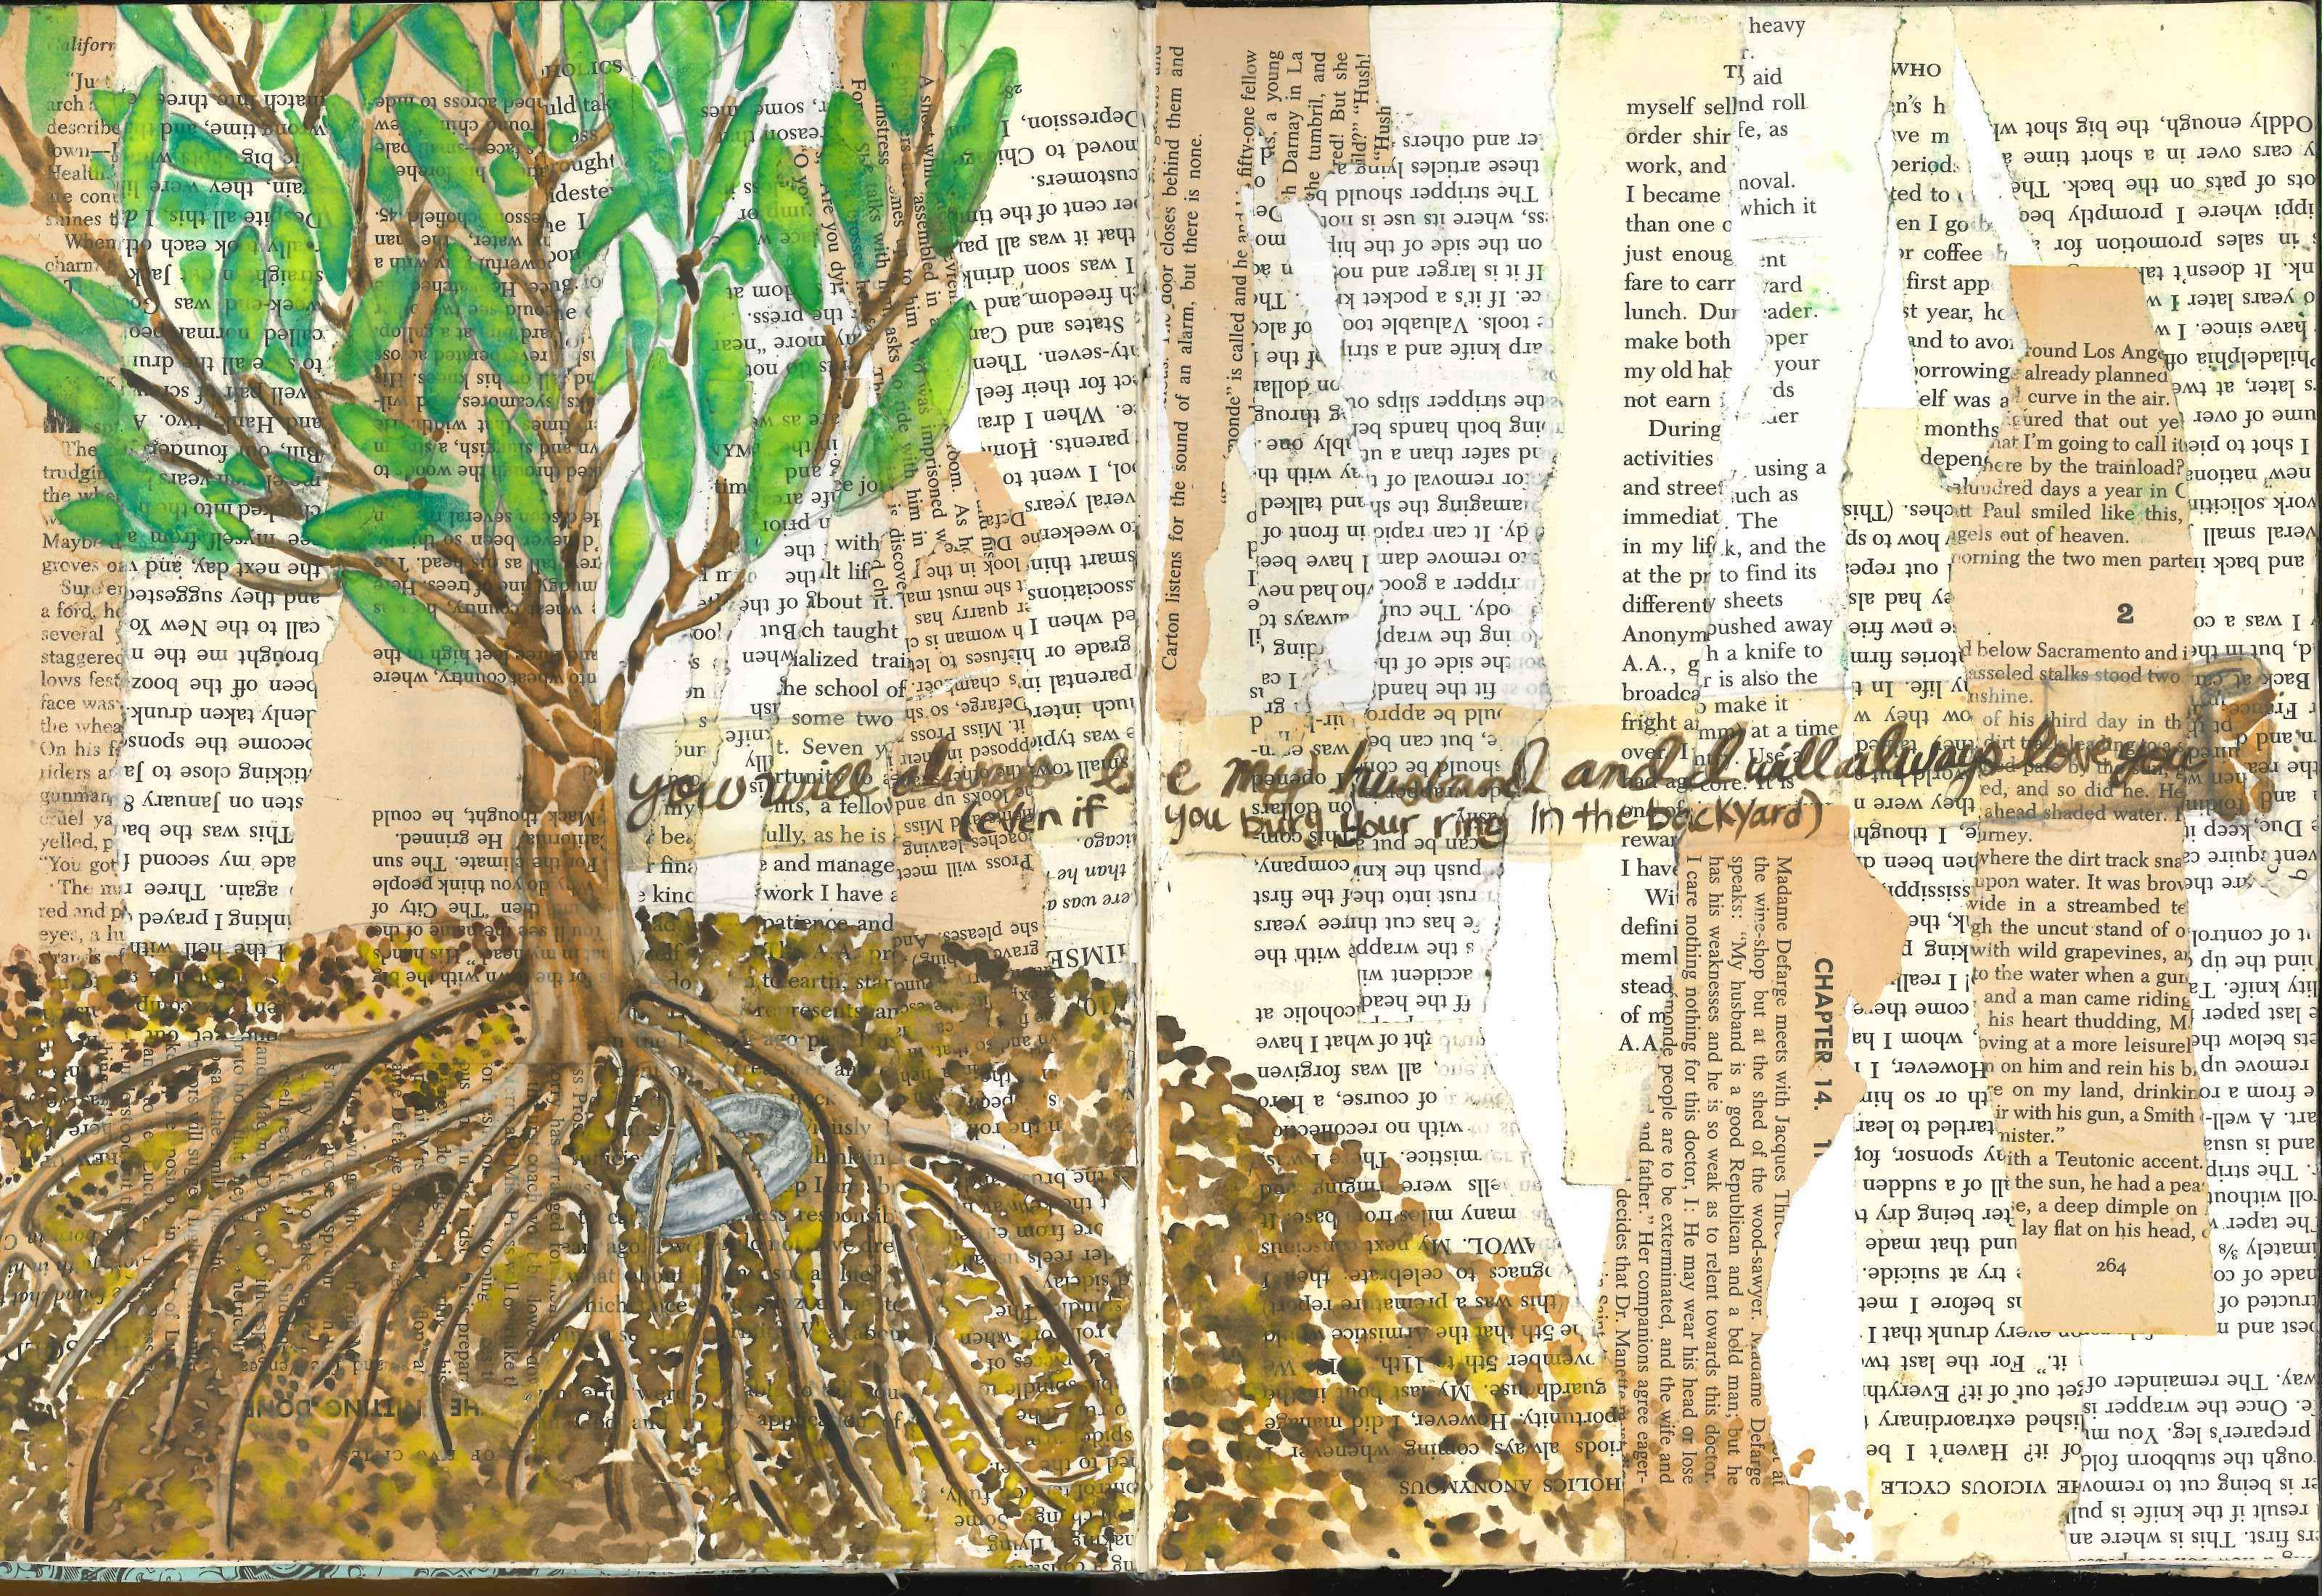 A visual journal page about my husband accidentally being buried in the backyard.